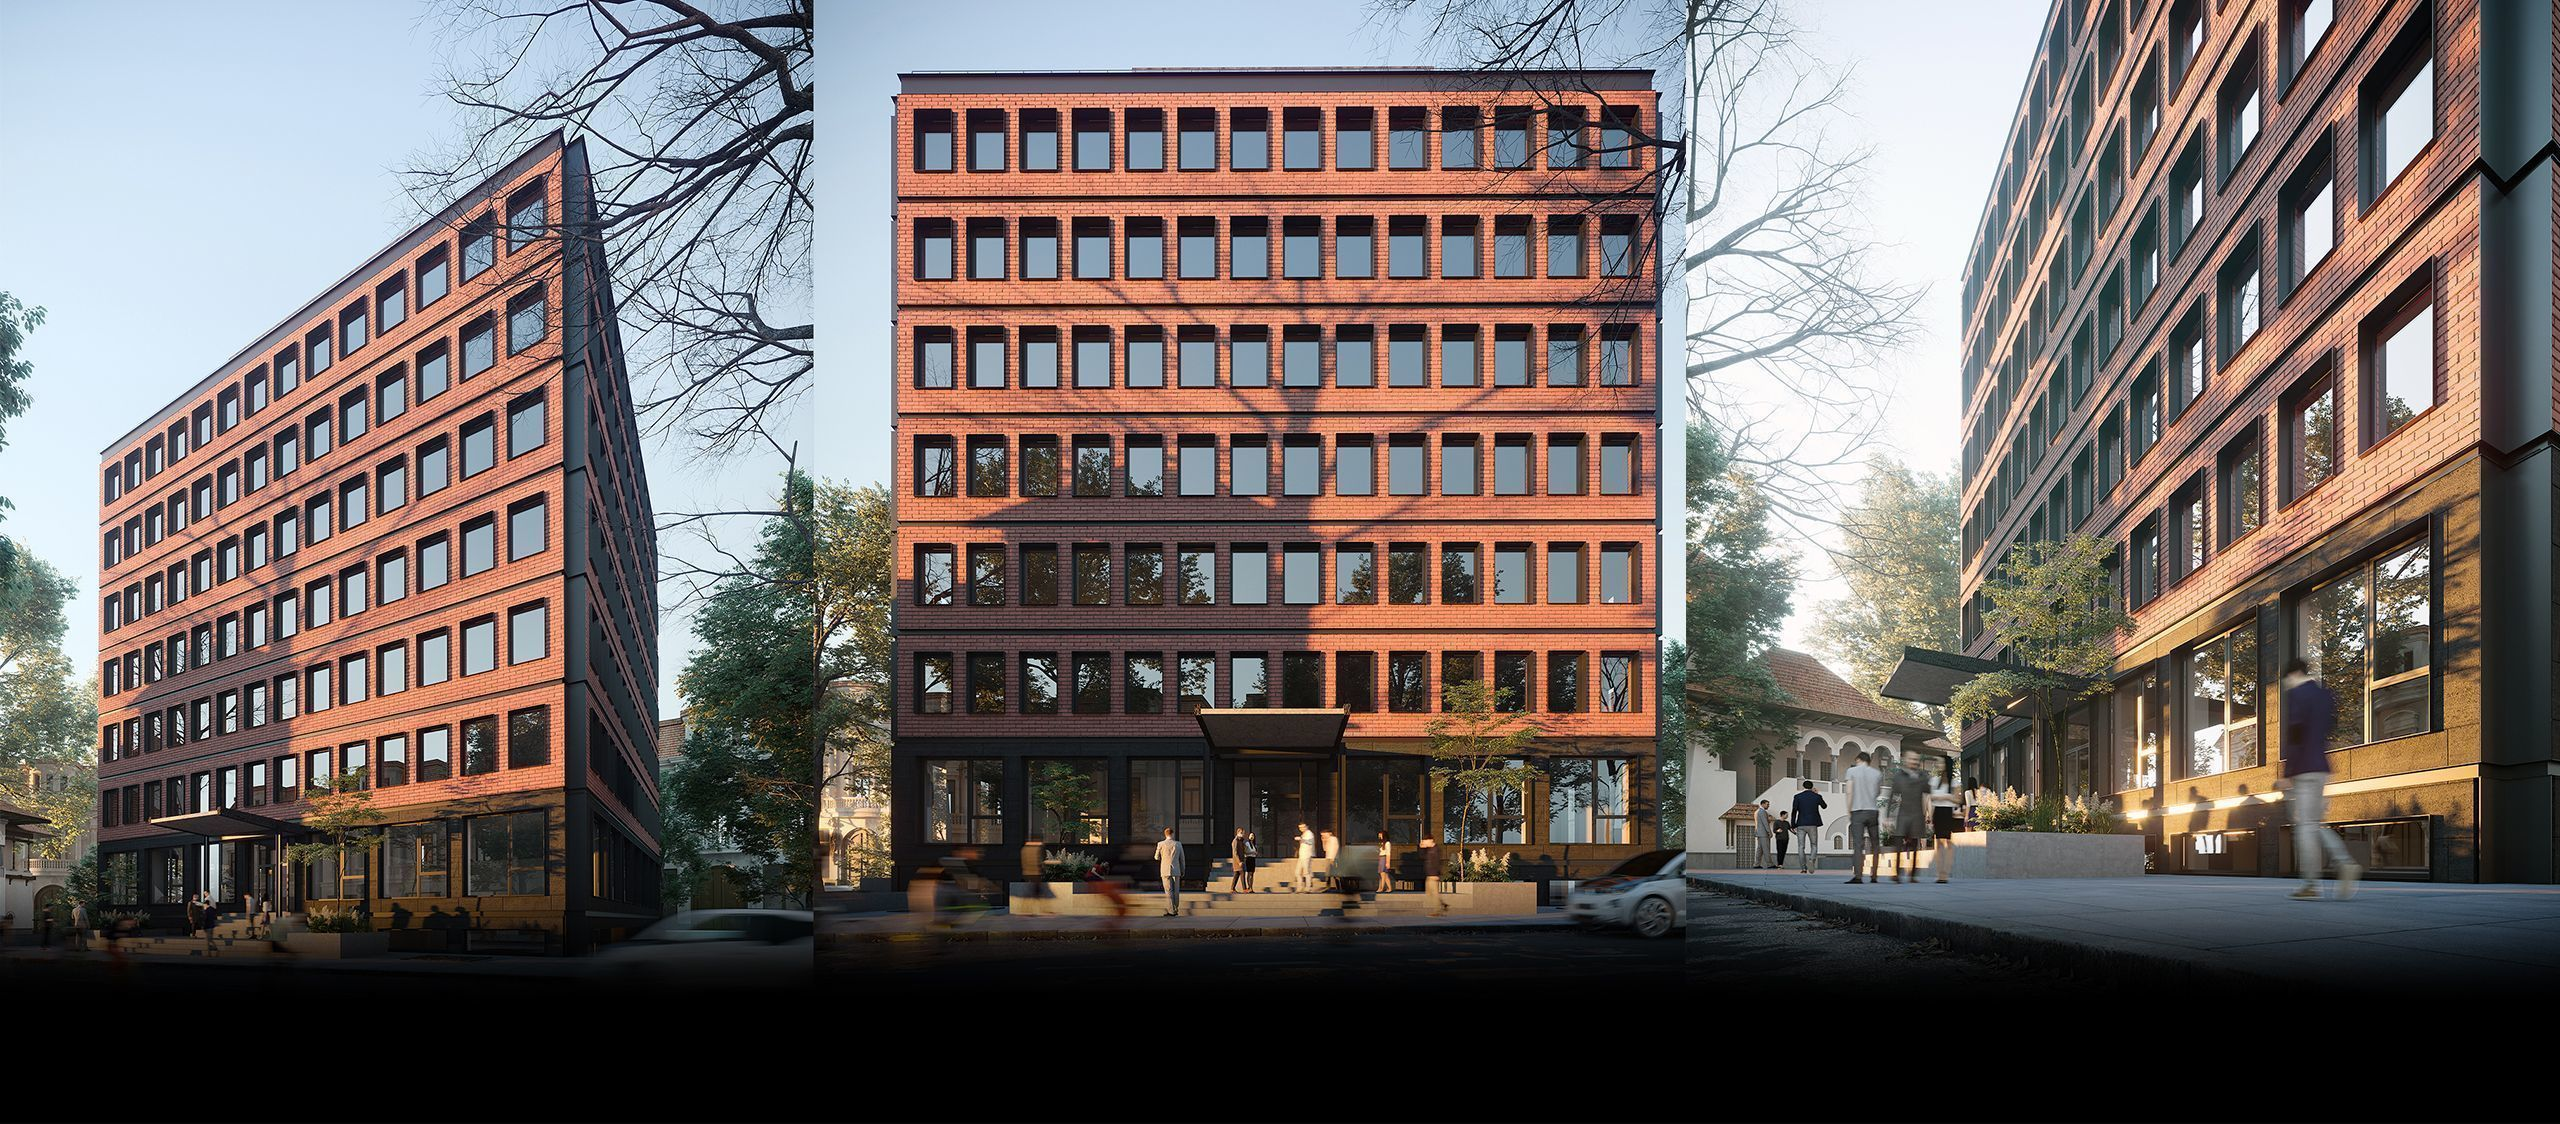 H Tudor Arghezi 21 - Office Building